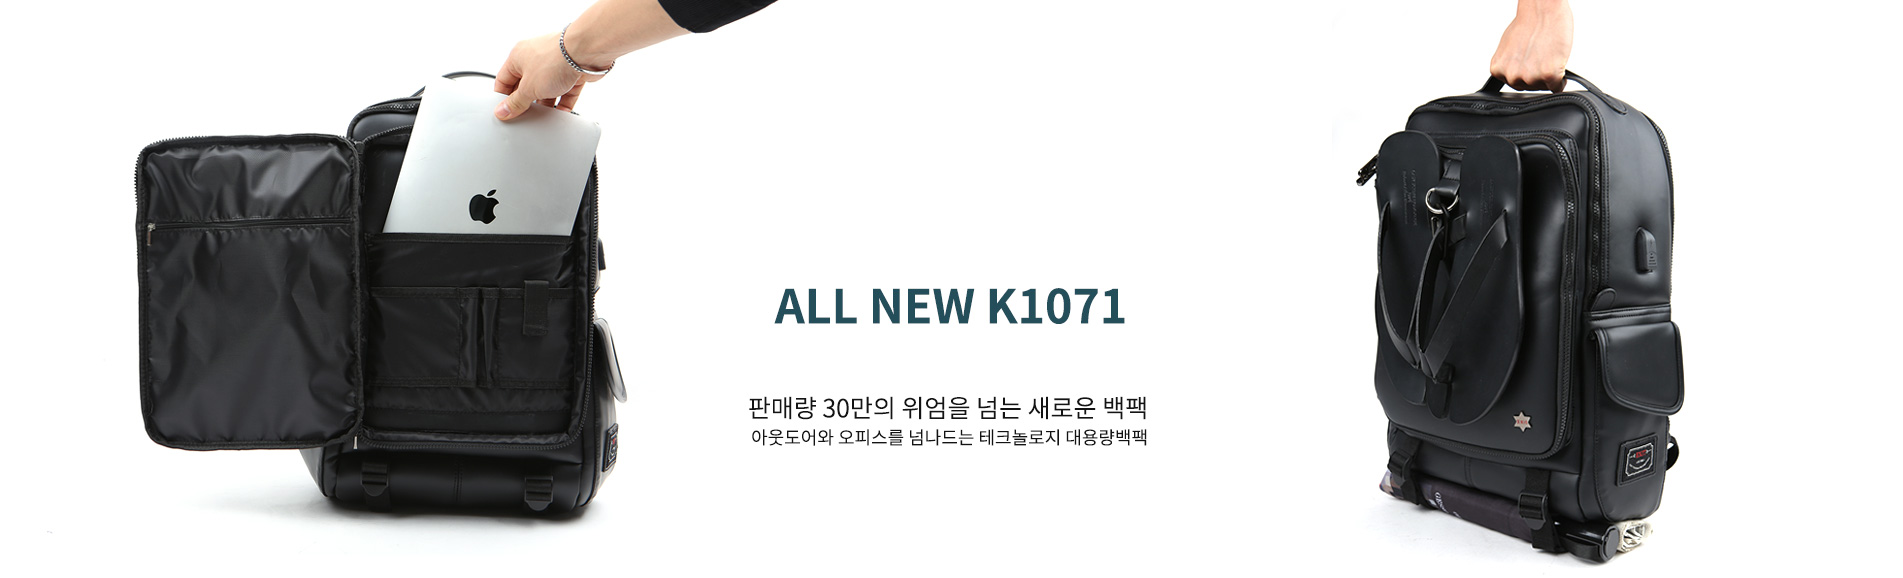 ALL NEW K1071